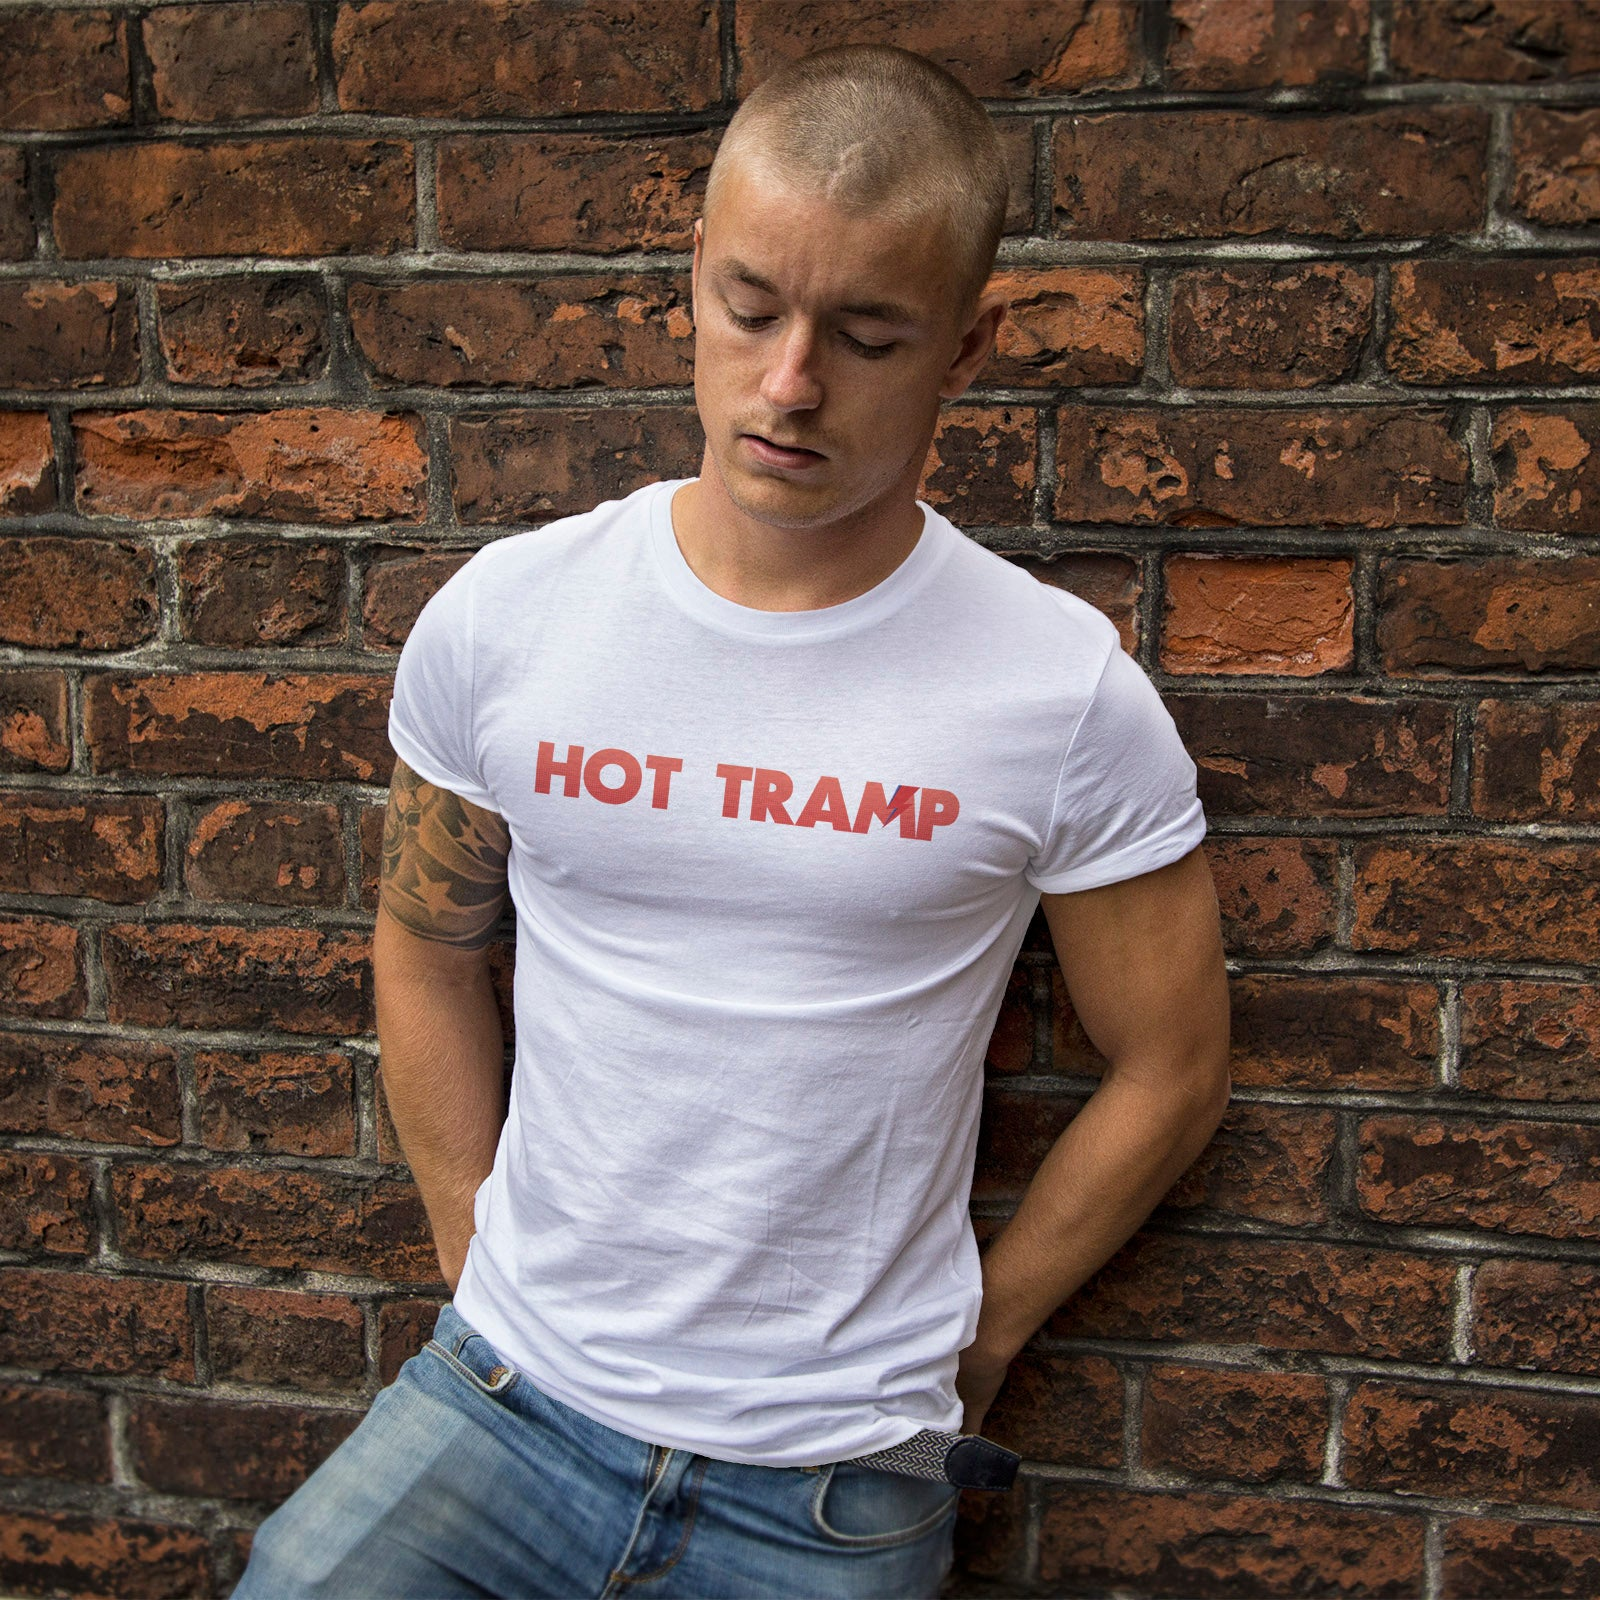 Hot Tramp - T-Shirt